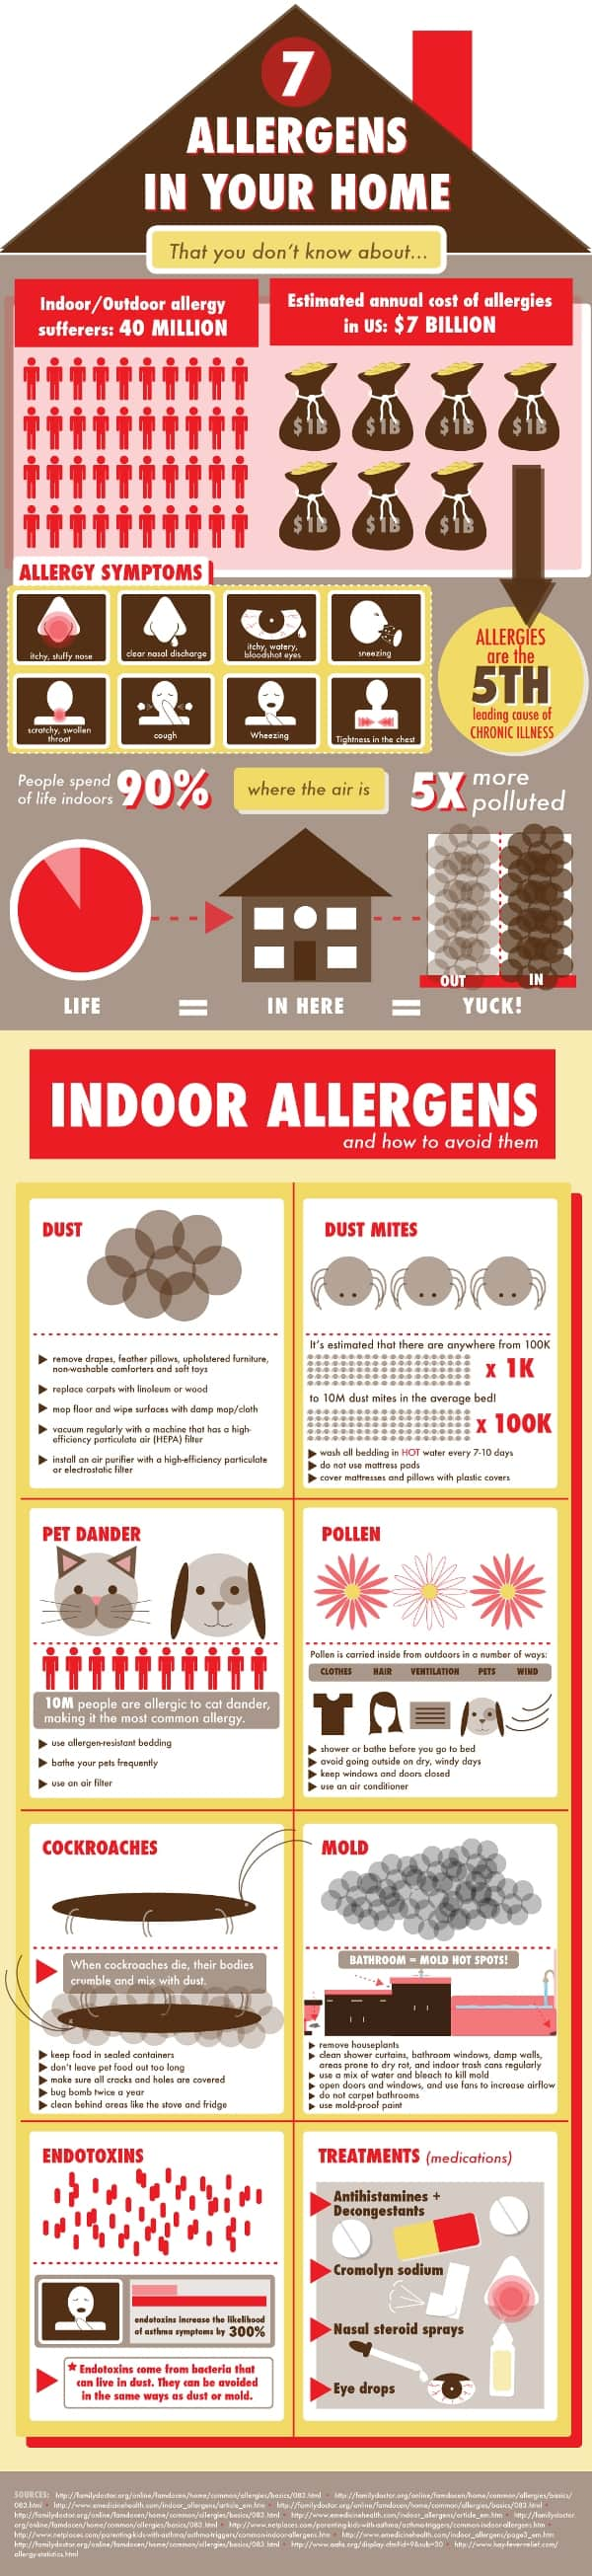 7 Allergens in your home that you didnt know about Infographic